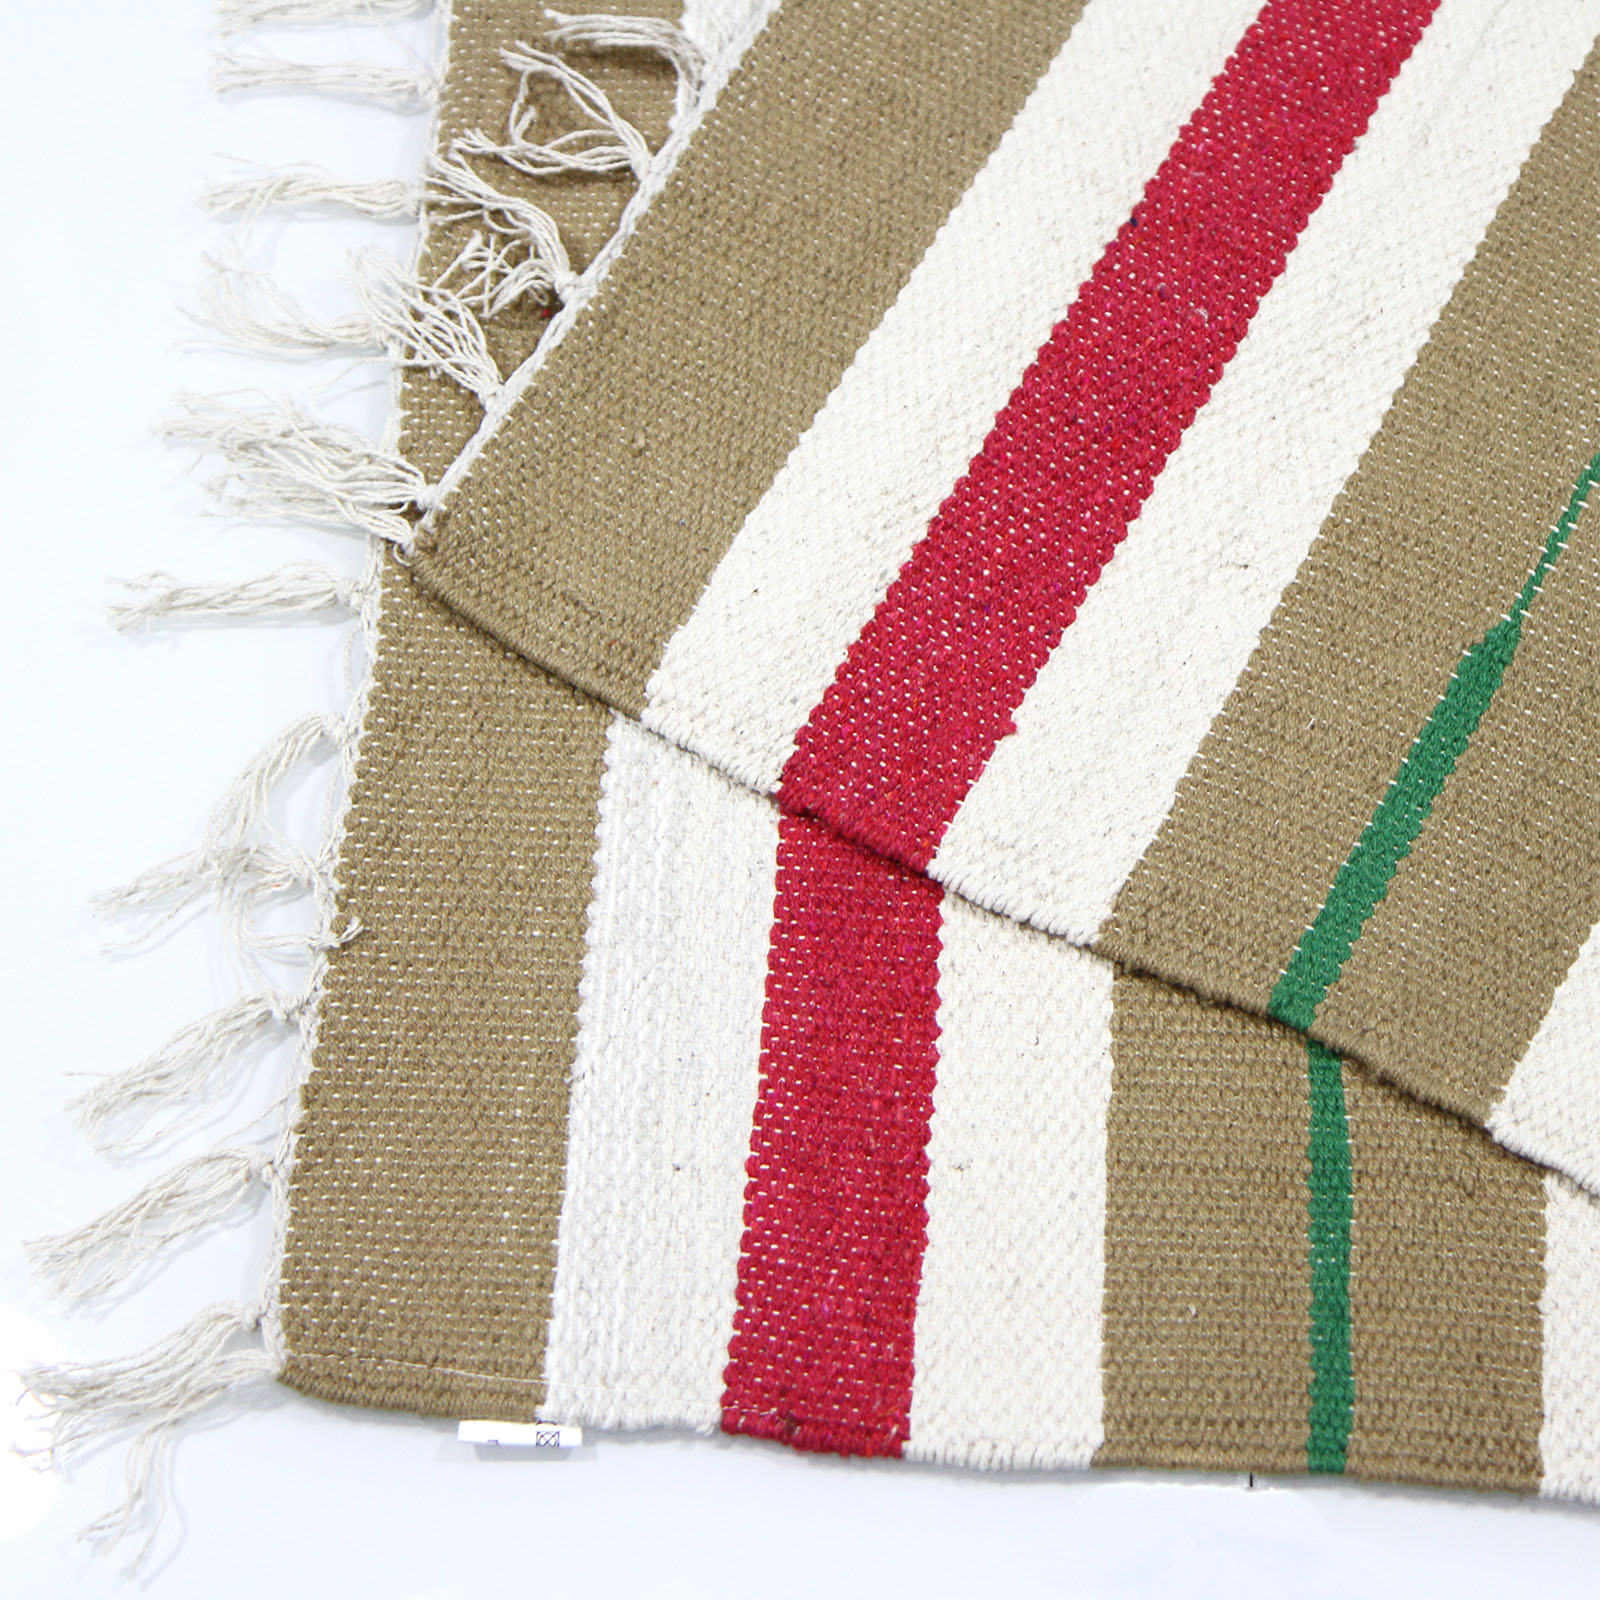 Colourful 100 Cotton Striped Flat Woven Rug 55x85cm Kitchen Living Room Ebay